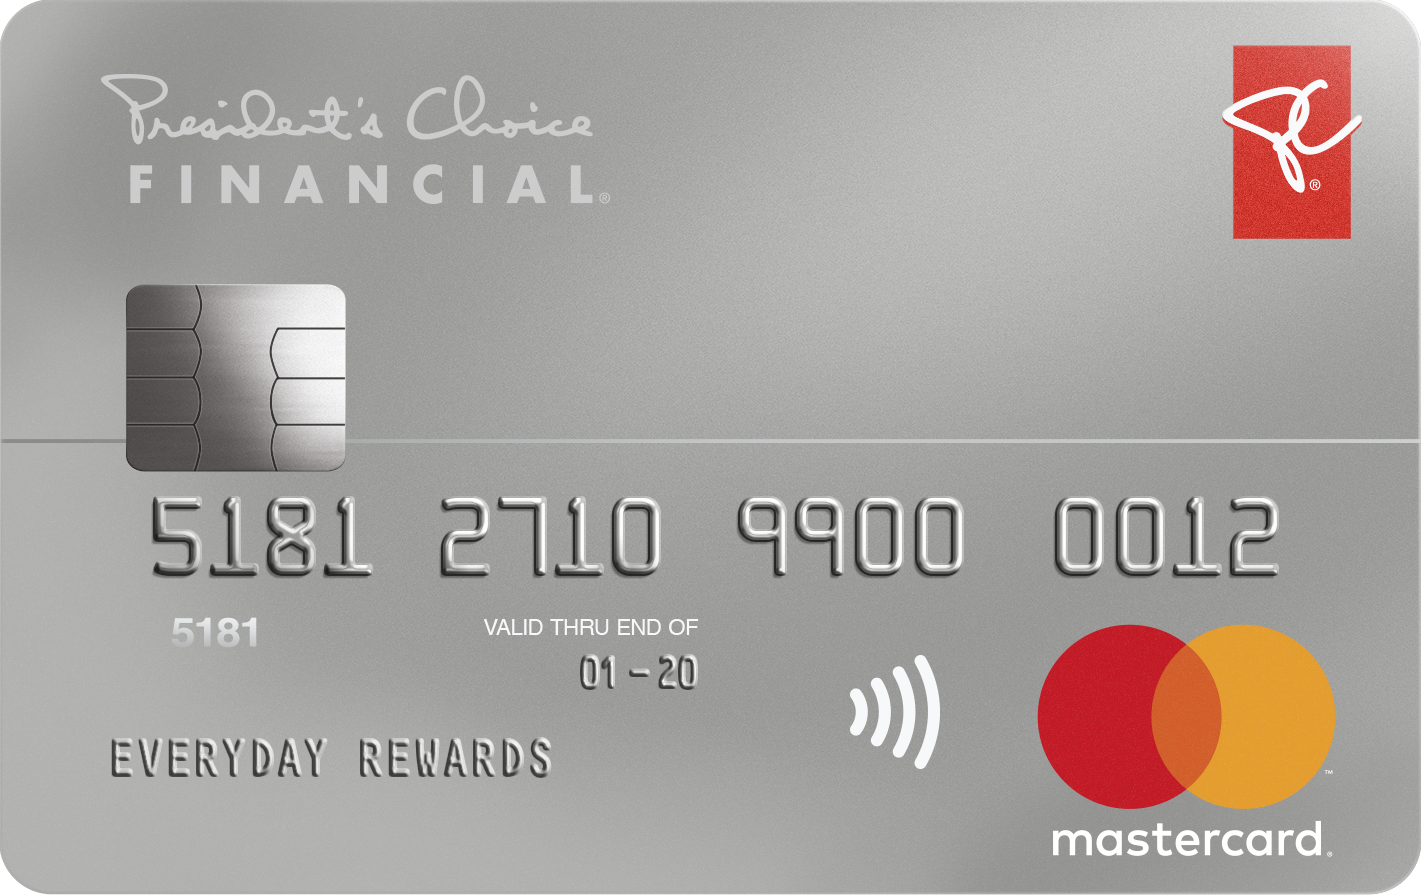 Best Student & Secured Credit Cards to Build Credit